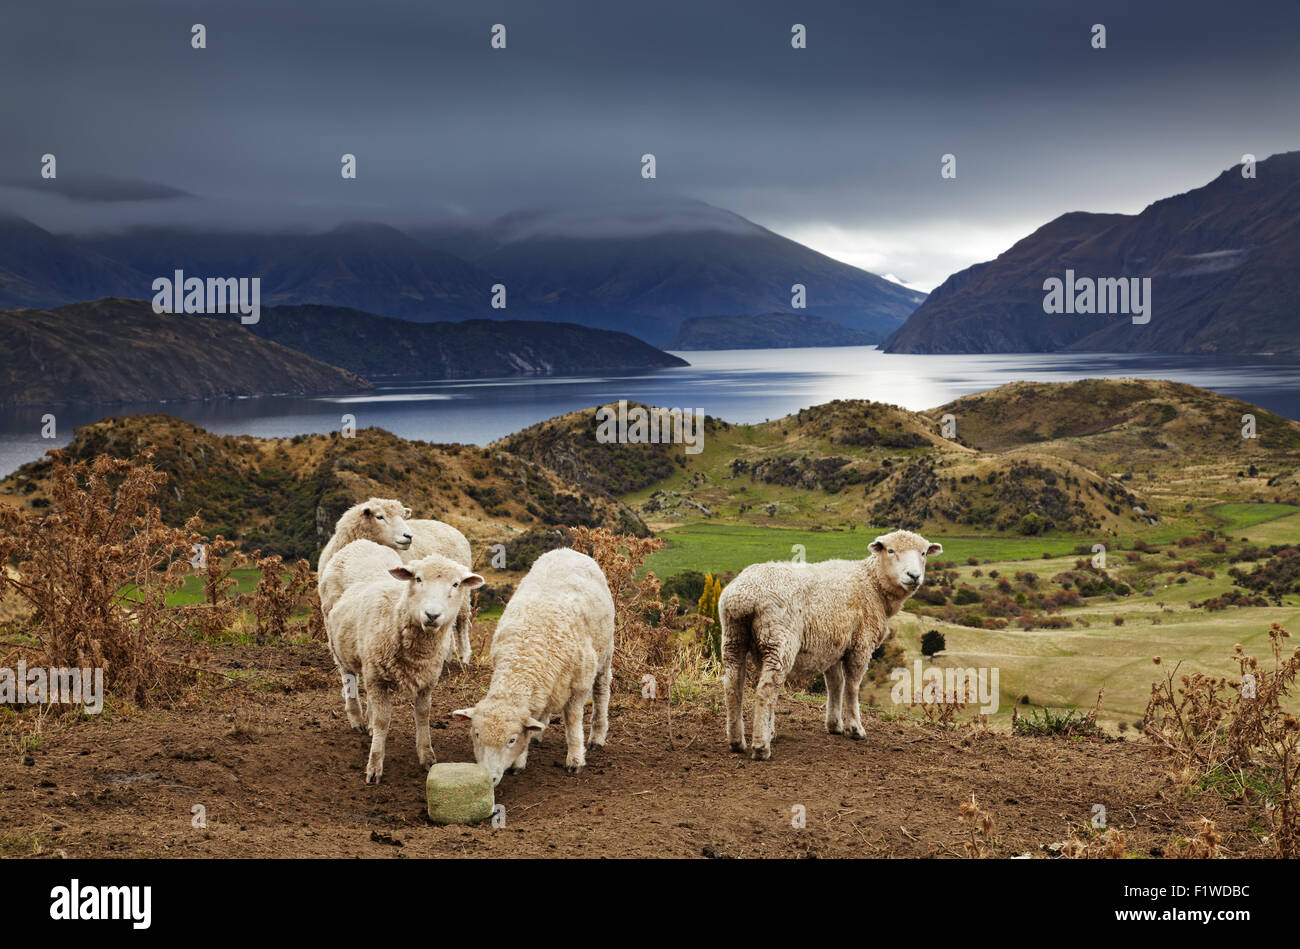 Sheep licking salt, Mount Roys, Wanaka, New Zealand - Stock Image